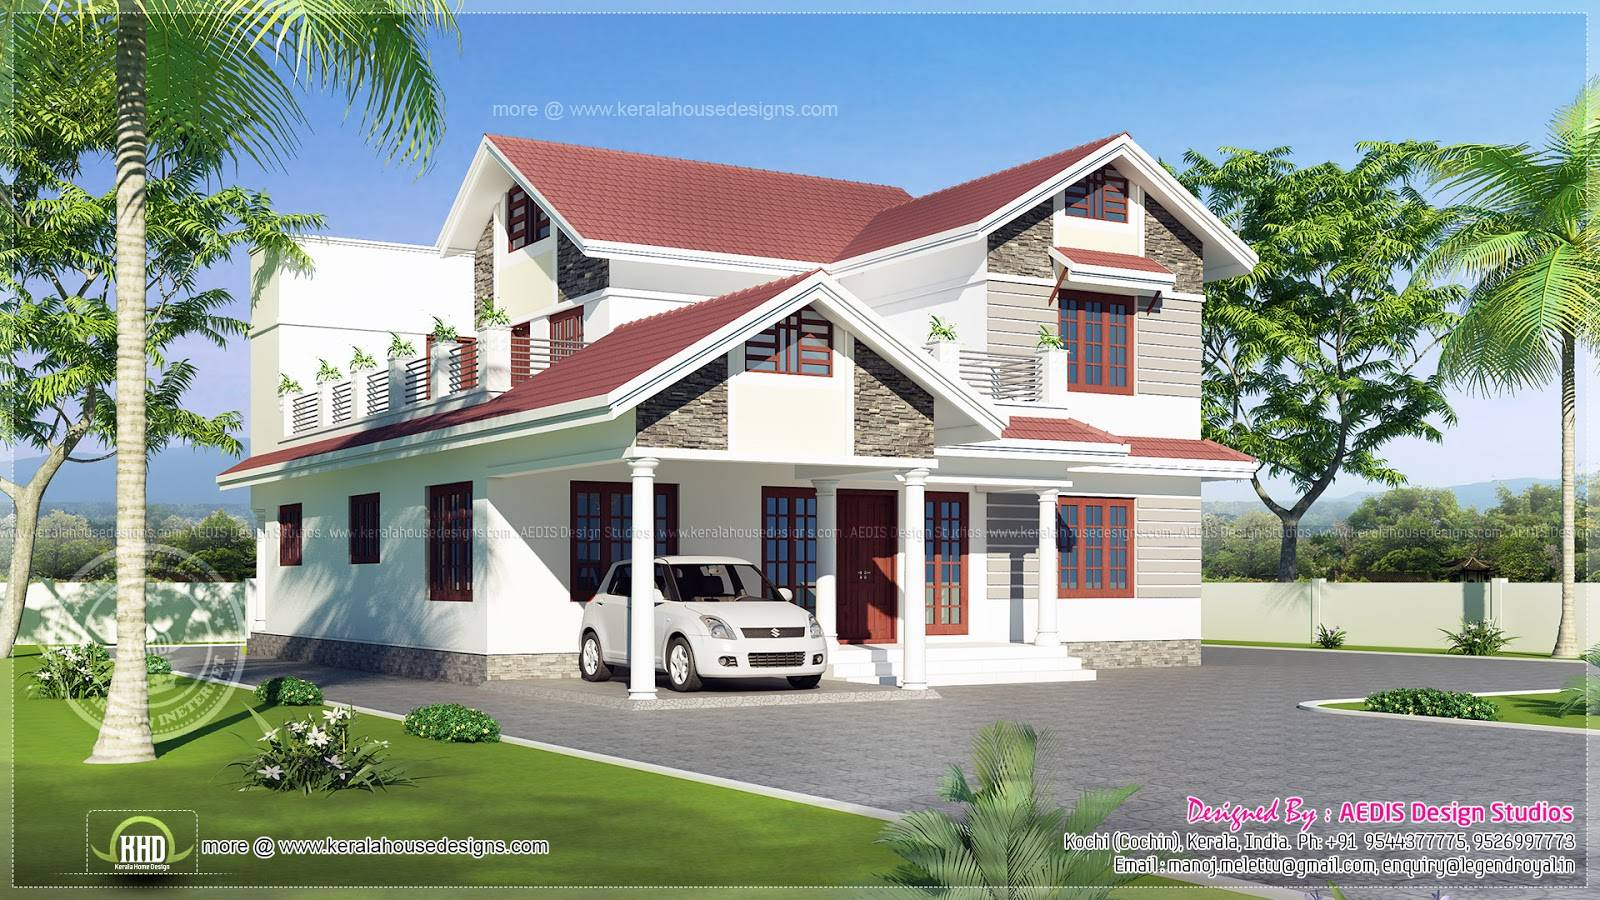 Sloping Roof House Exterior Sqm Home Kerala Plans Home Plans Blueprints 6072